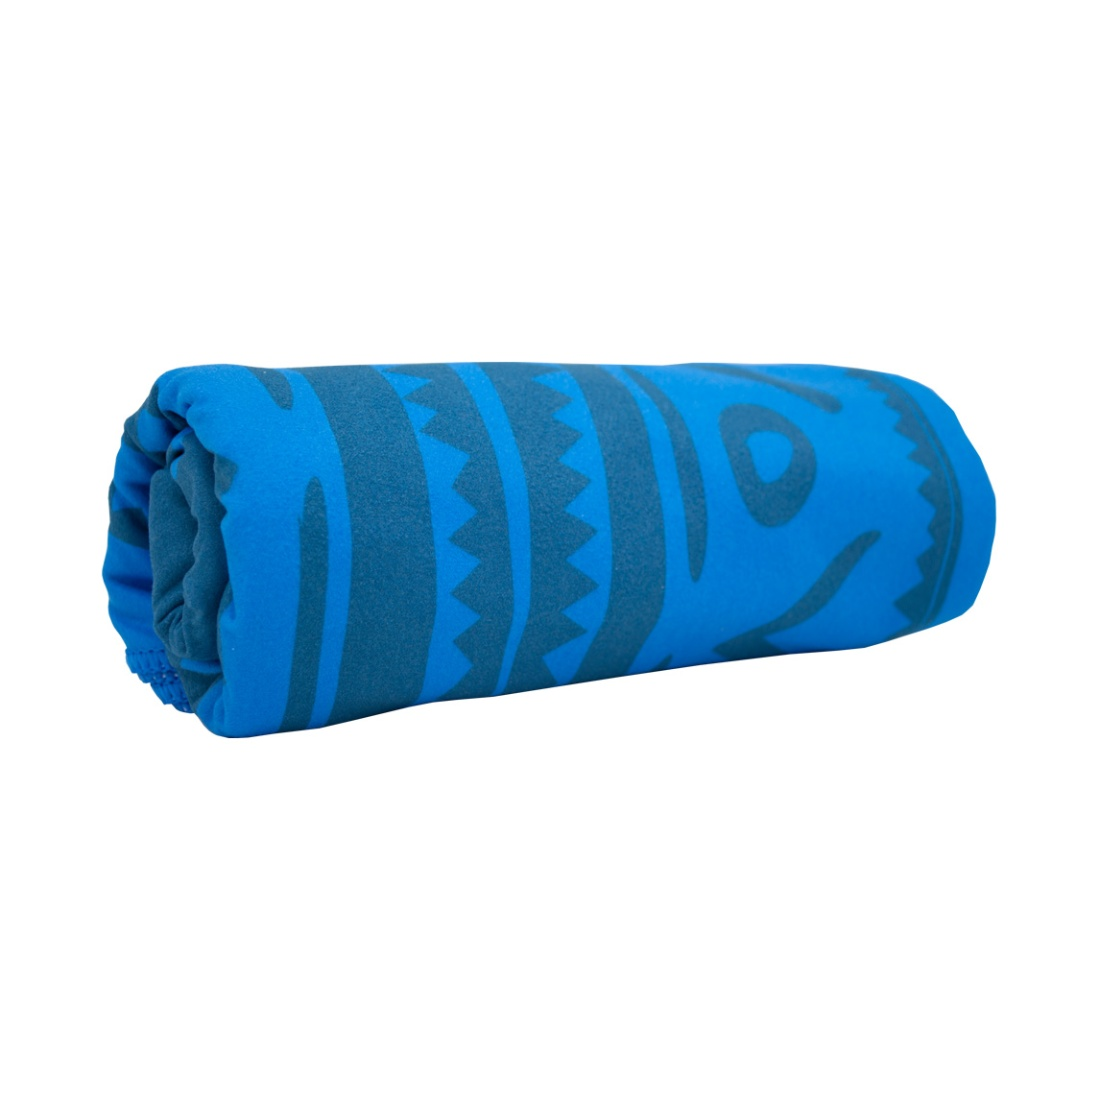 MICROFIBER MULTI-PURPOSE TOWEL BU Rolled Up